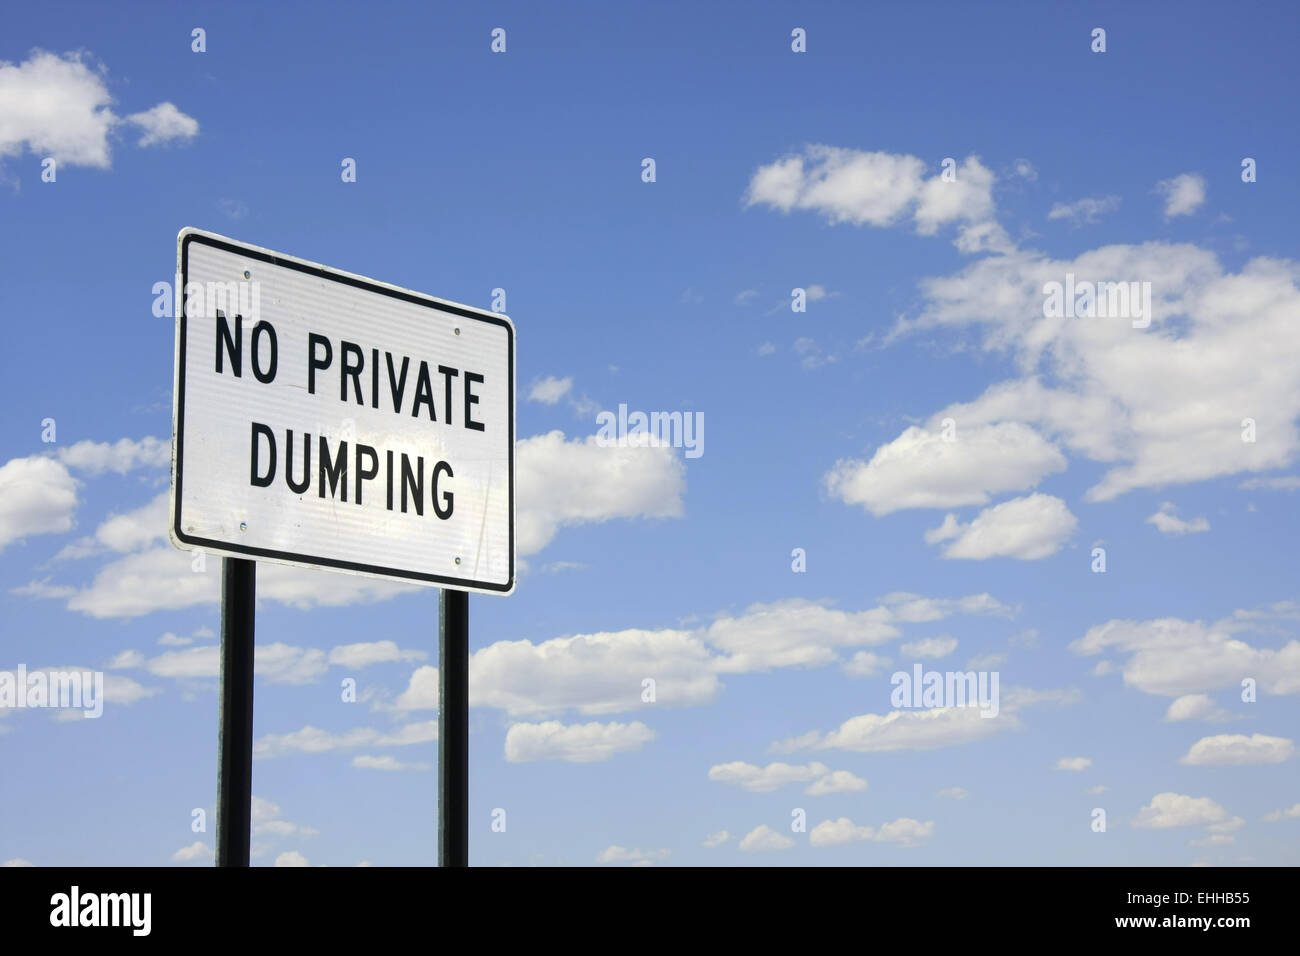 No private dumping - Stock Image